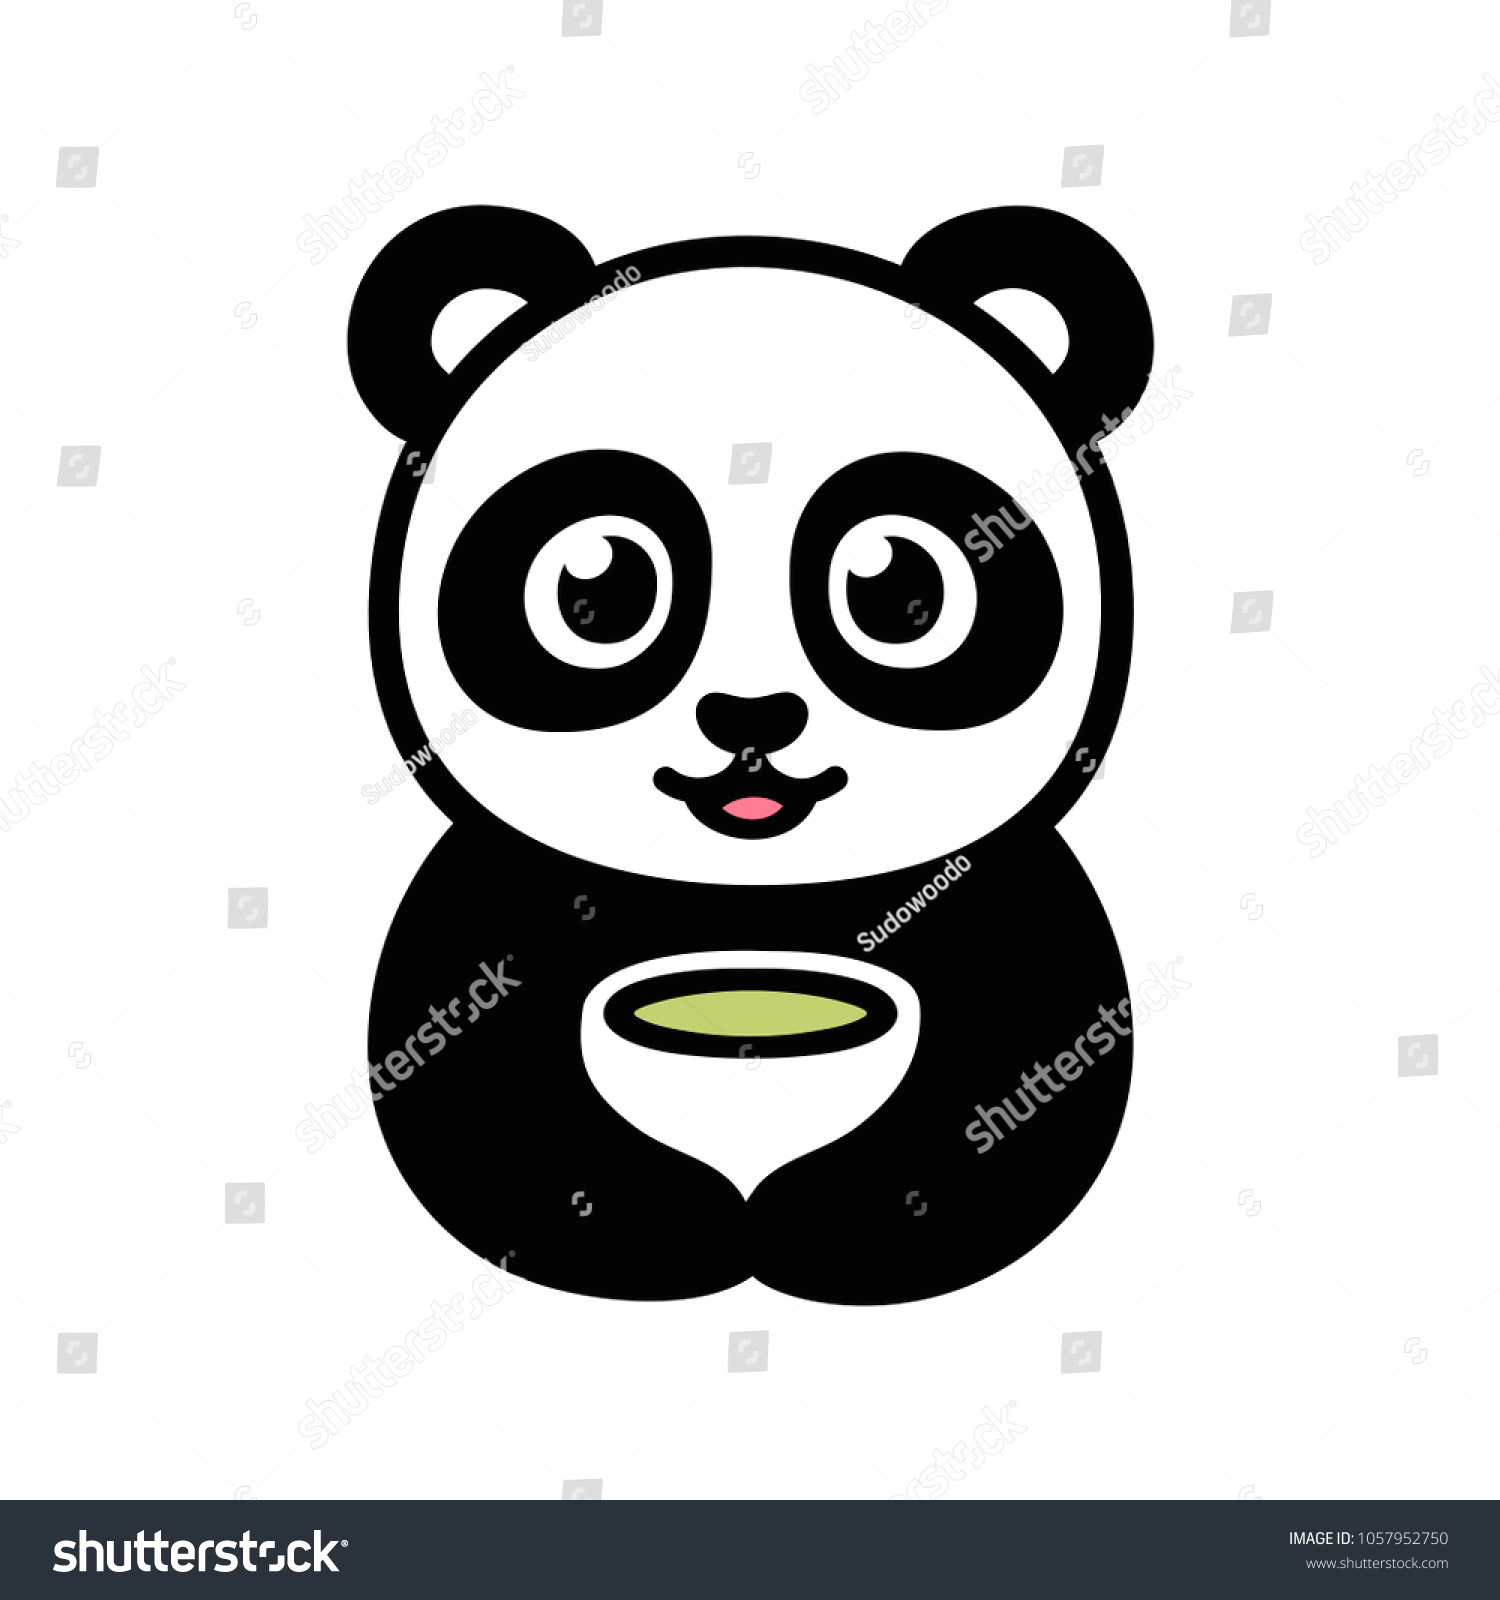 cute cartoon panda with cup of green tea traditional asian food and drink illustration